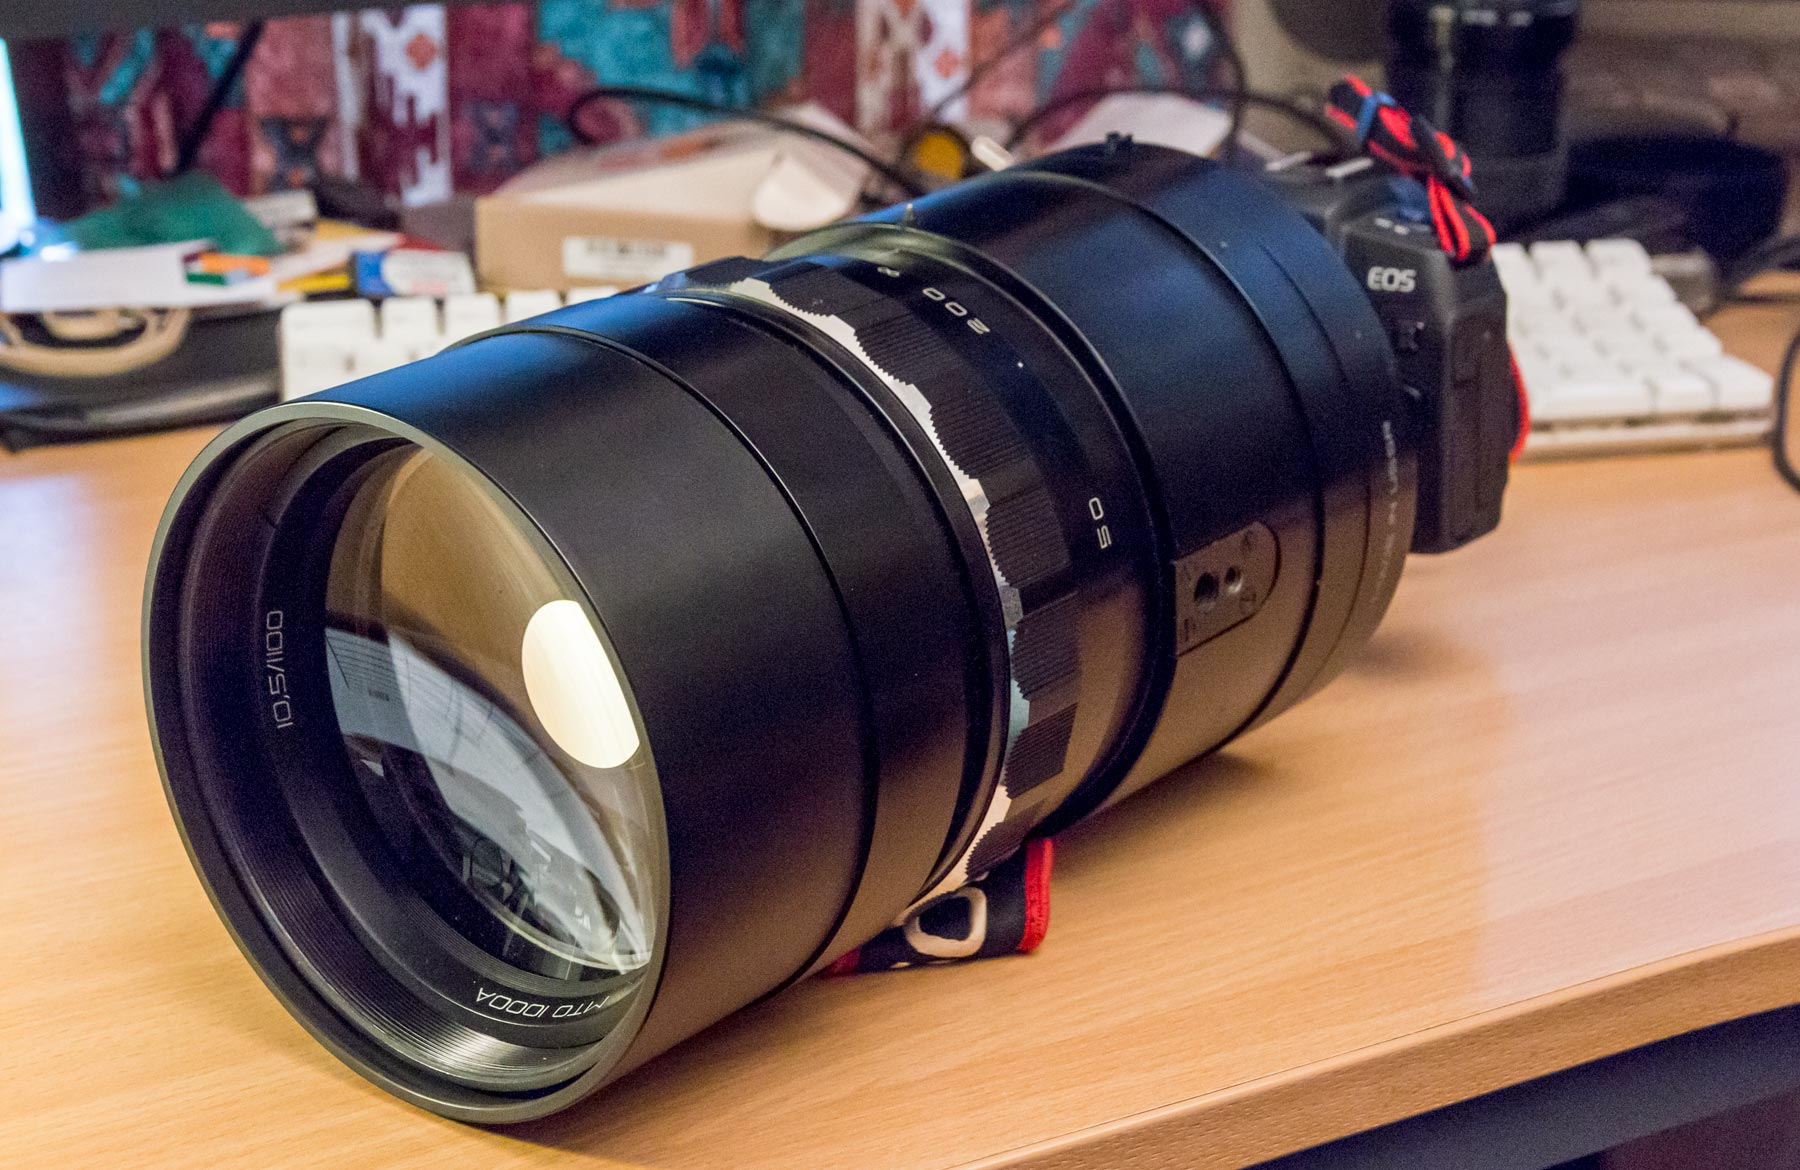 Using old lenses on a modern digital DSLR camera with adapters